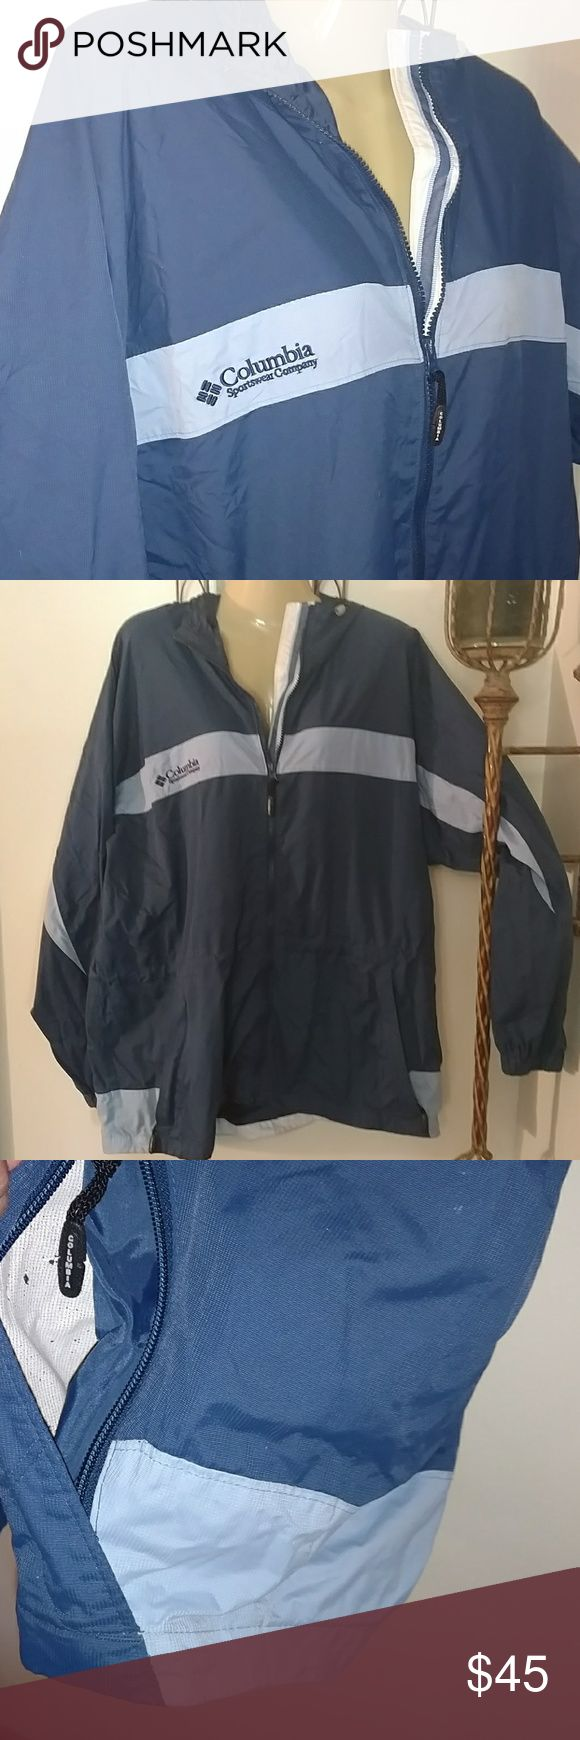 WOMEN'S COLUMBIA COAT Design as Shown Excellent Condition Hood can be left out or rolled up as Shown Mesh lining as Shown X2 Zippered Side Pockets Toggle Hood to tighten down Toggle waist to tighten or loosen Blue on Baby Blue are Colors w white Accent Color Weather proof Columbia Jackets & Coats